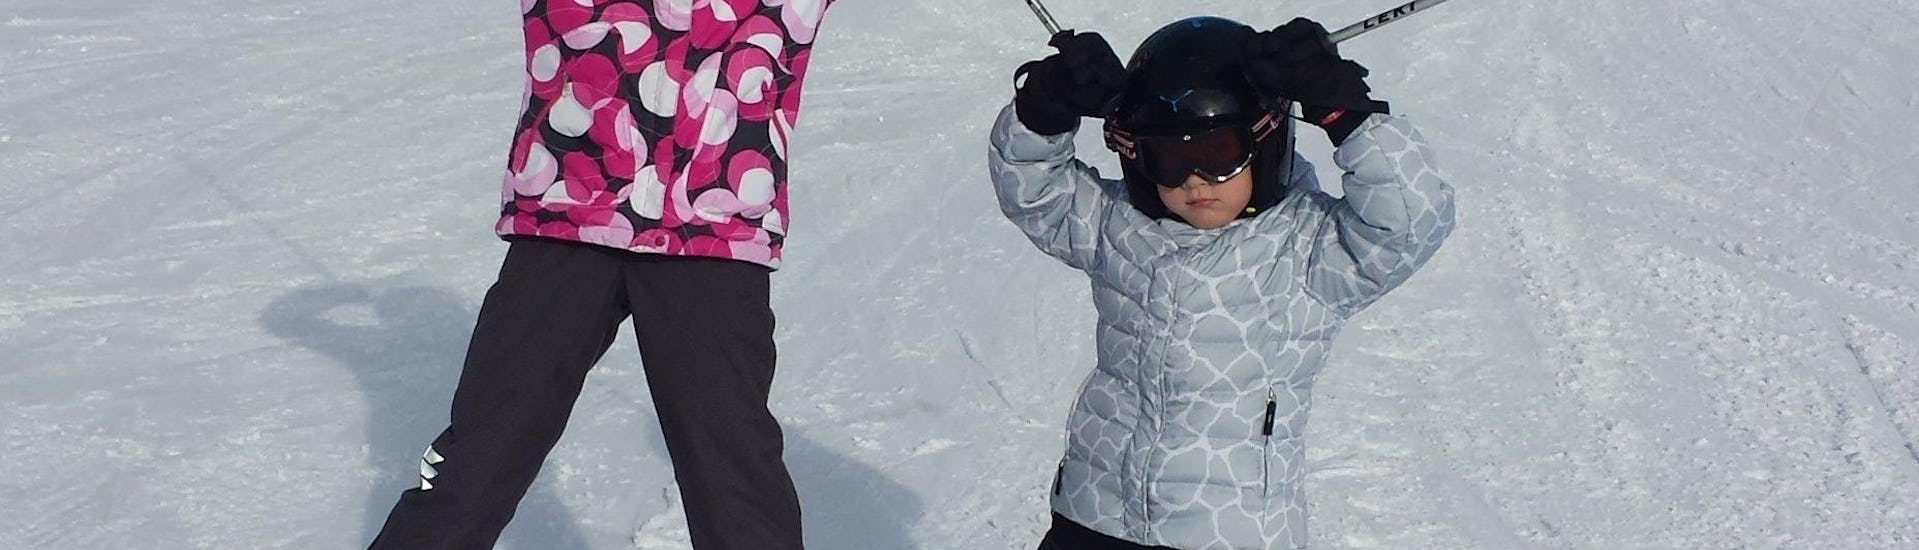 Private Ski Instructor for Kids - All Ages